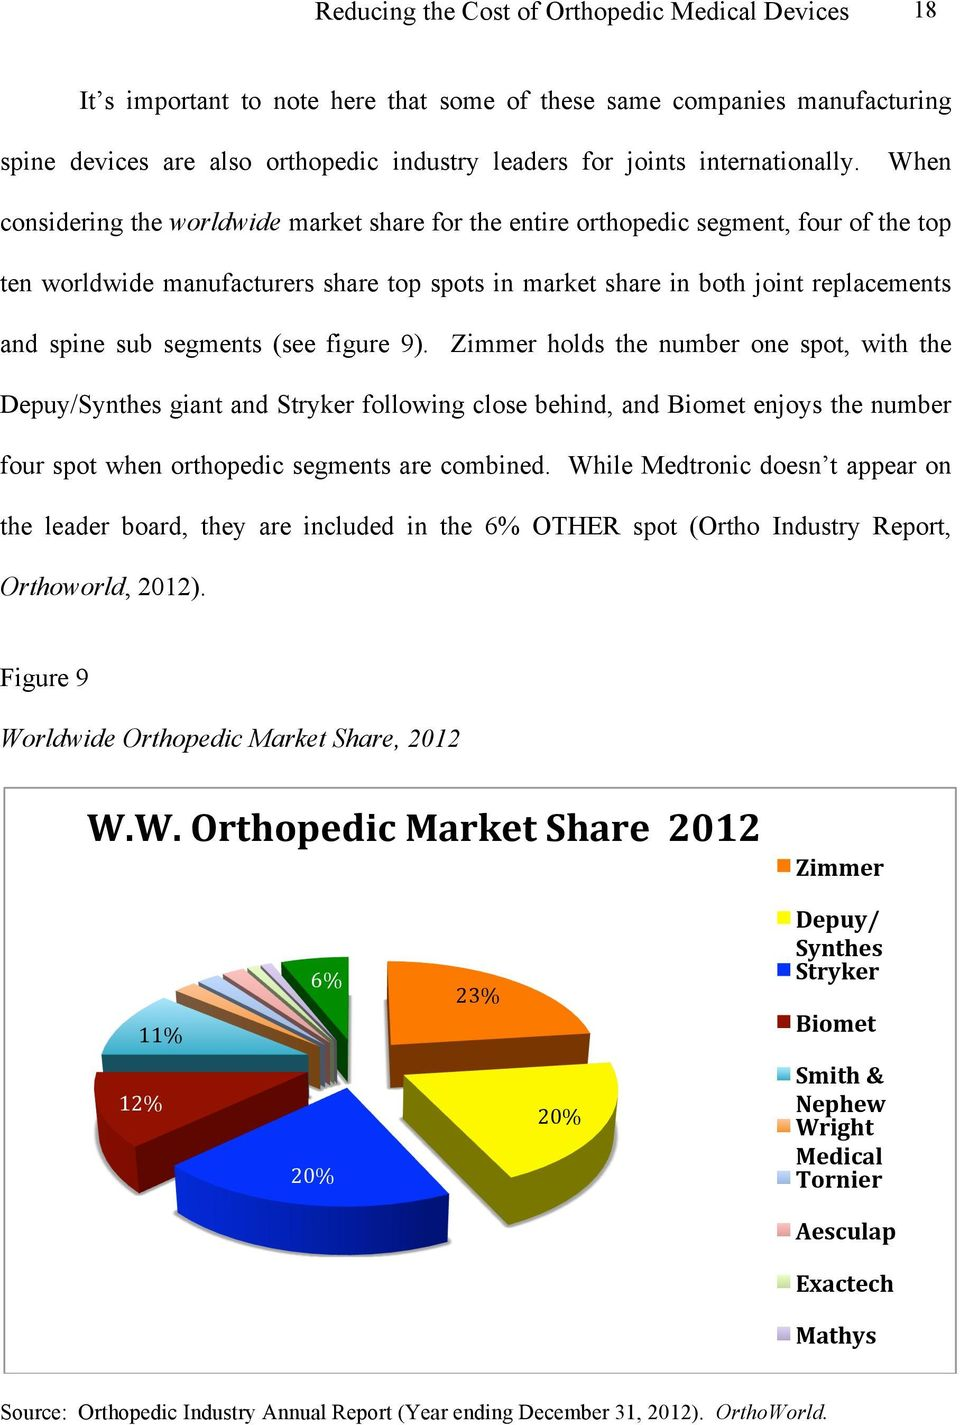 Reducing the Cost of Orthopedic Medical Devices 2  !!! Table